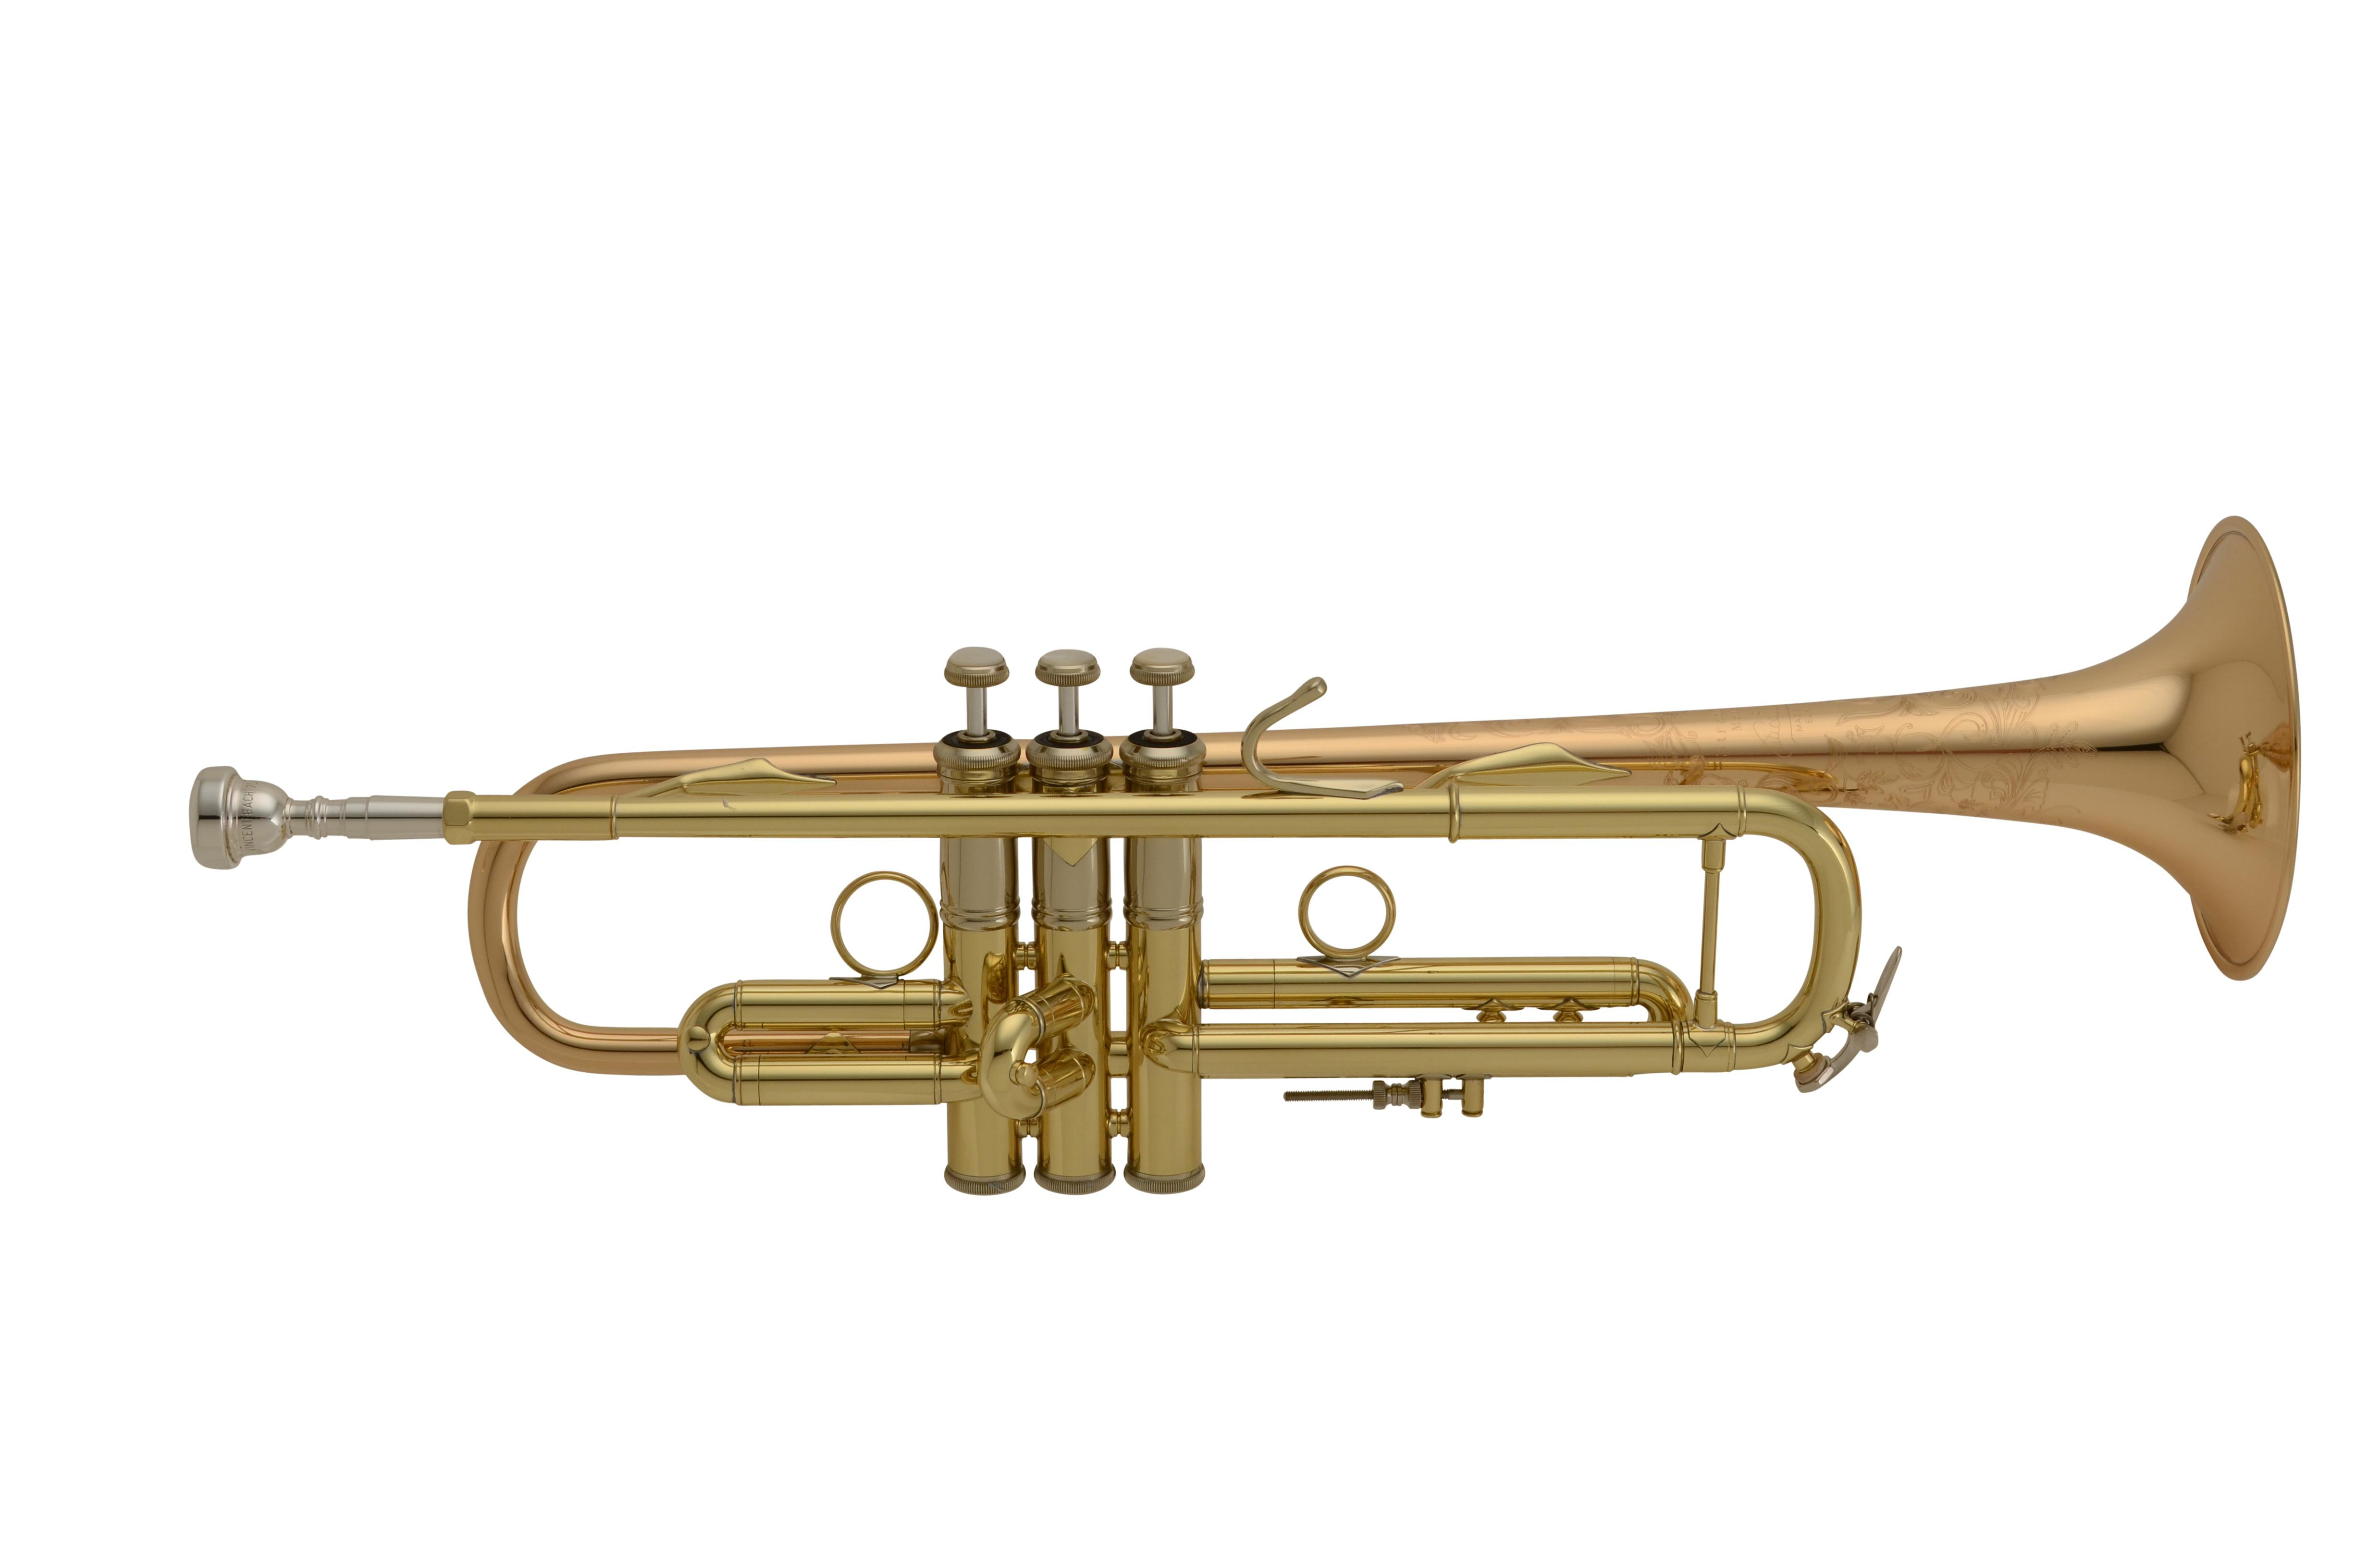 trumpet computer wallpapers desktop backgrounds